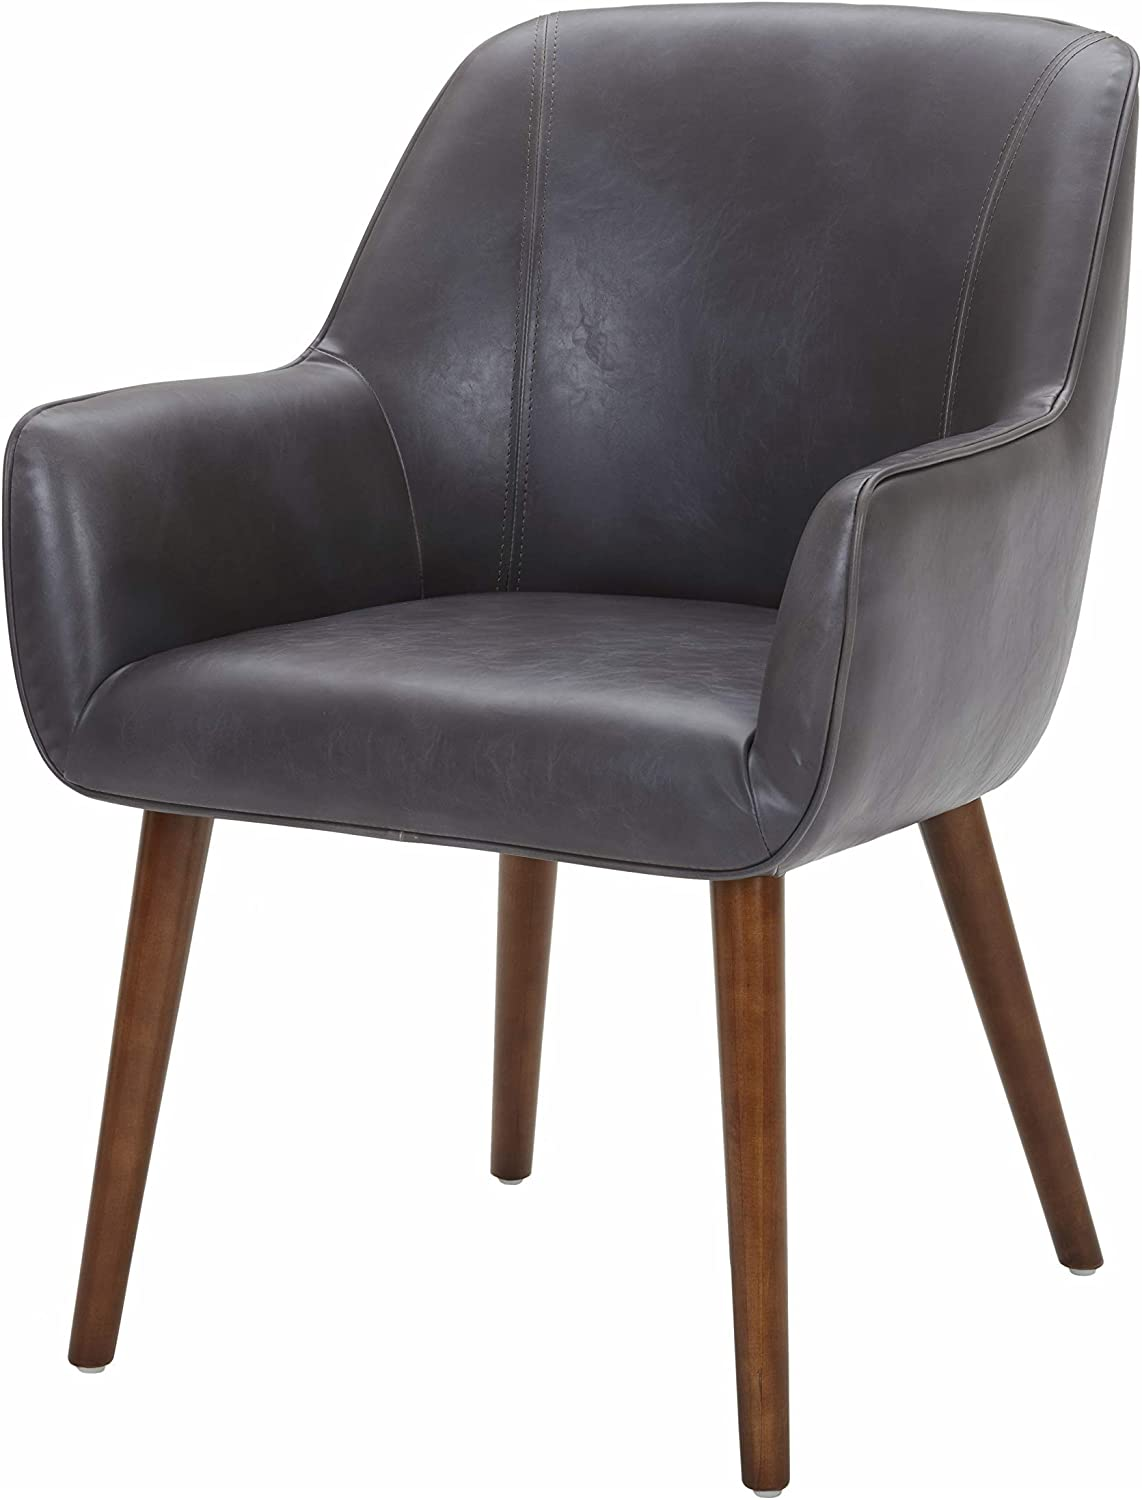 Amazon Brand – Rivet Julie Mid-Century Modern Faux Leather Slope Accent Kitchen Dining Room Chair, 34